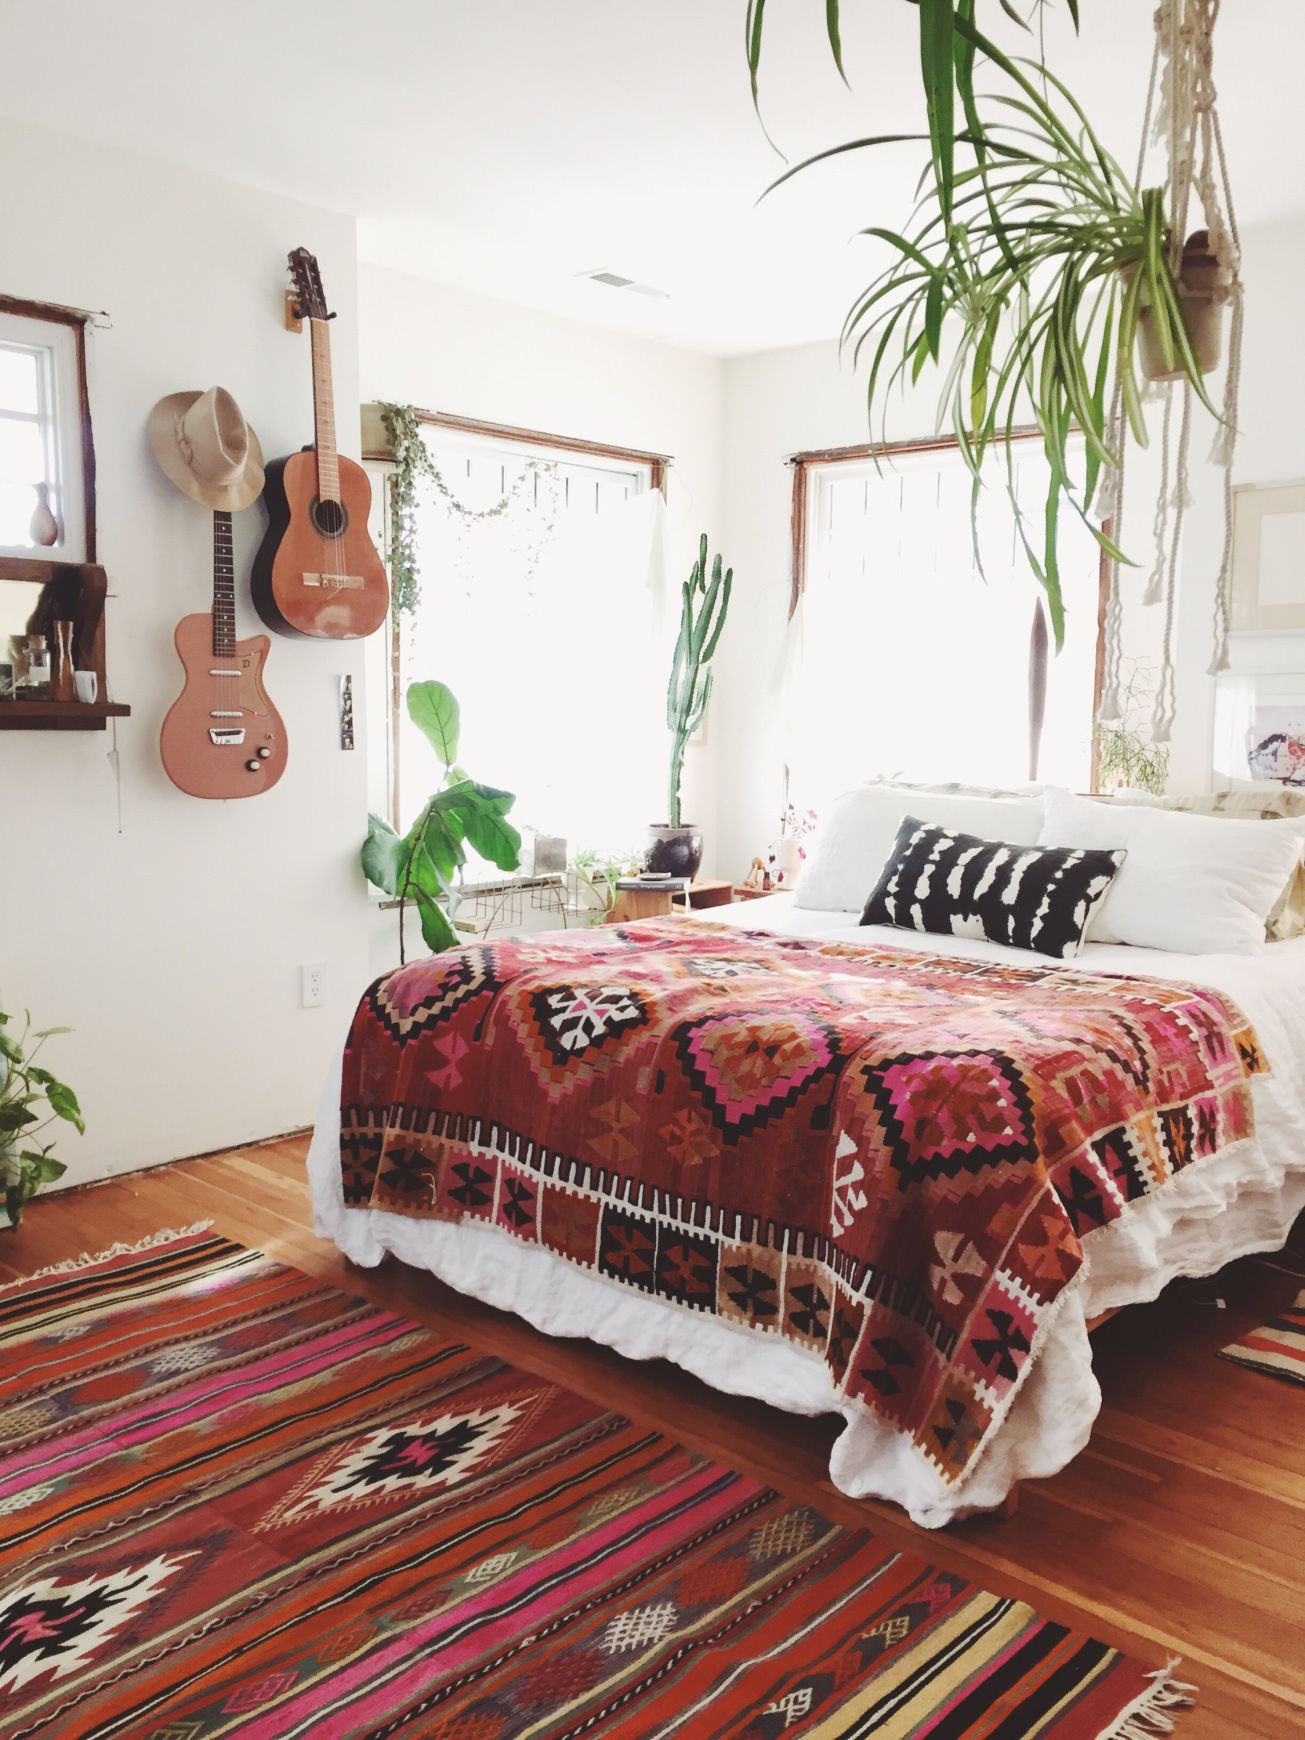 25 bohemian bedroom decor ideas that will make you want to redecorate asap stylecaster